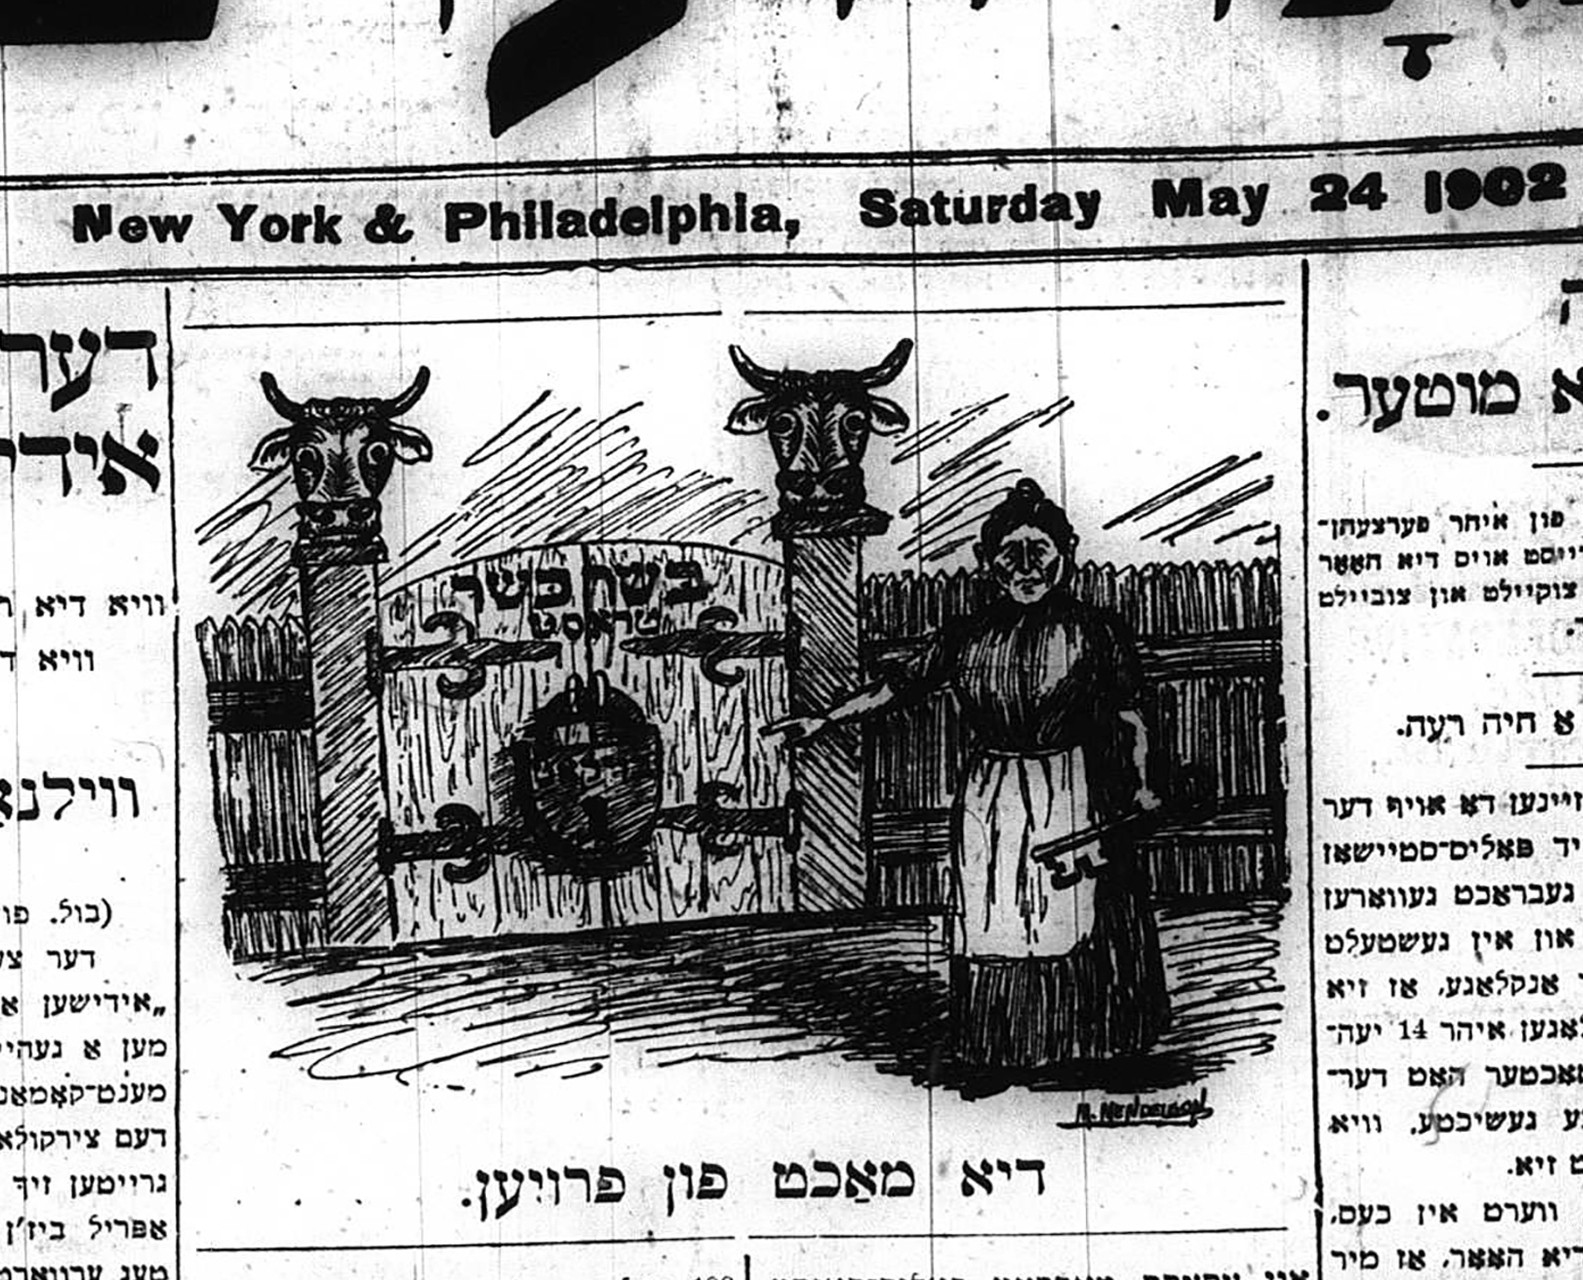 1902 newspaper clipping with a drawing highlighting the kosher meat boycott.